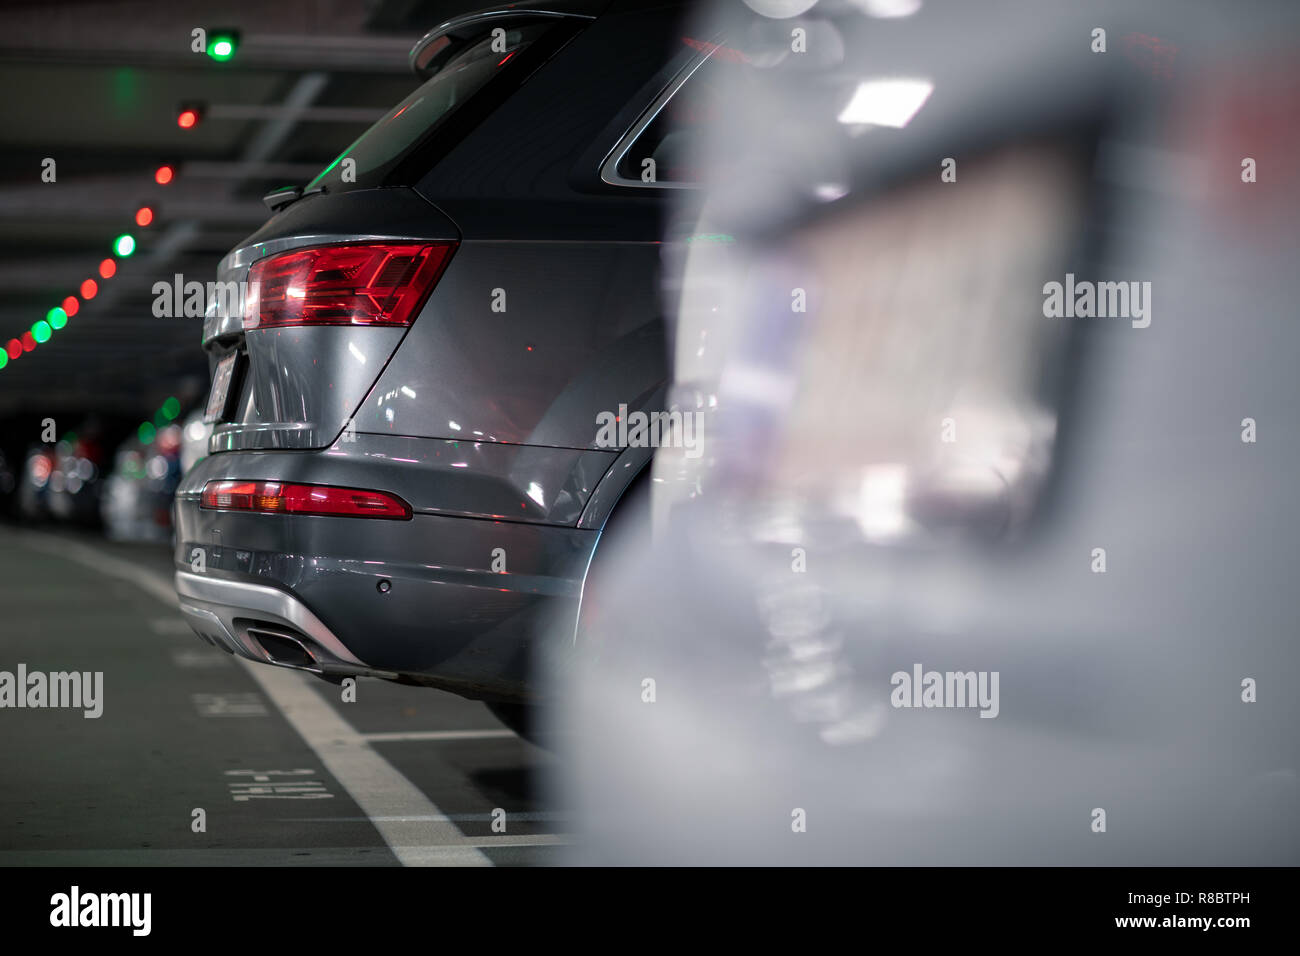 Audi Garage Roermond : Mall parking lots stock photos & mall parking lots stock images alamy